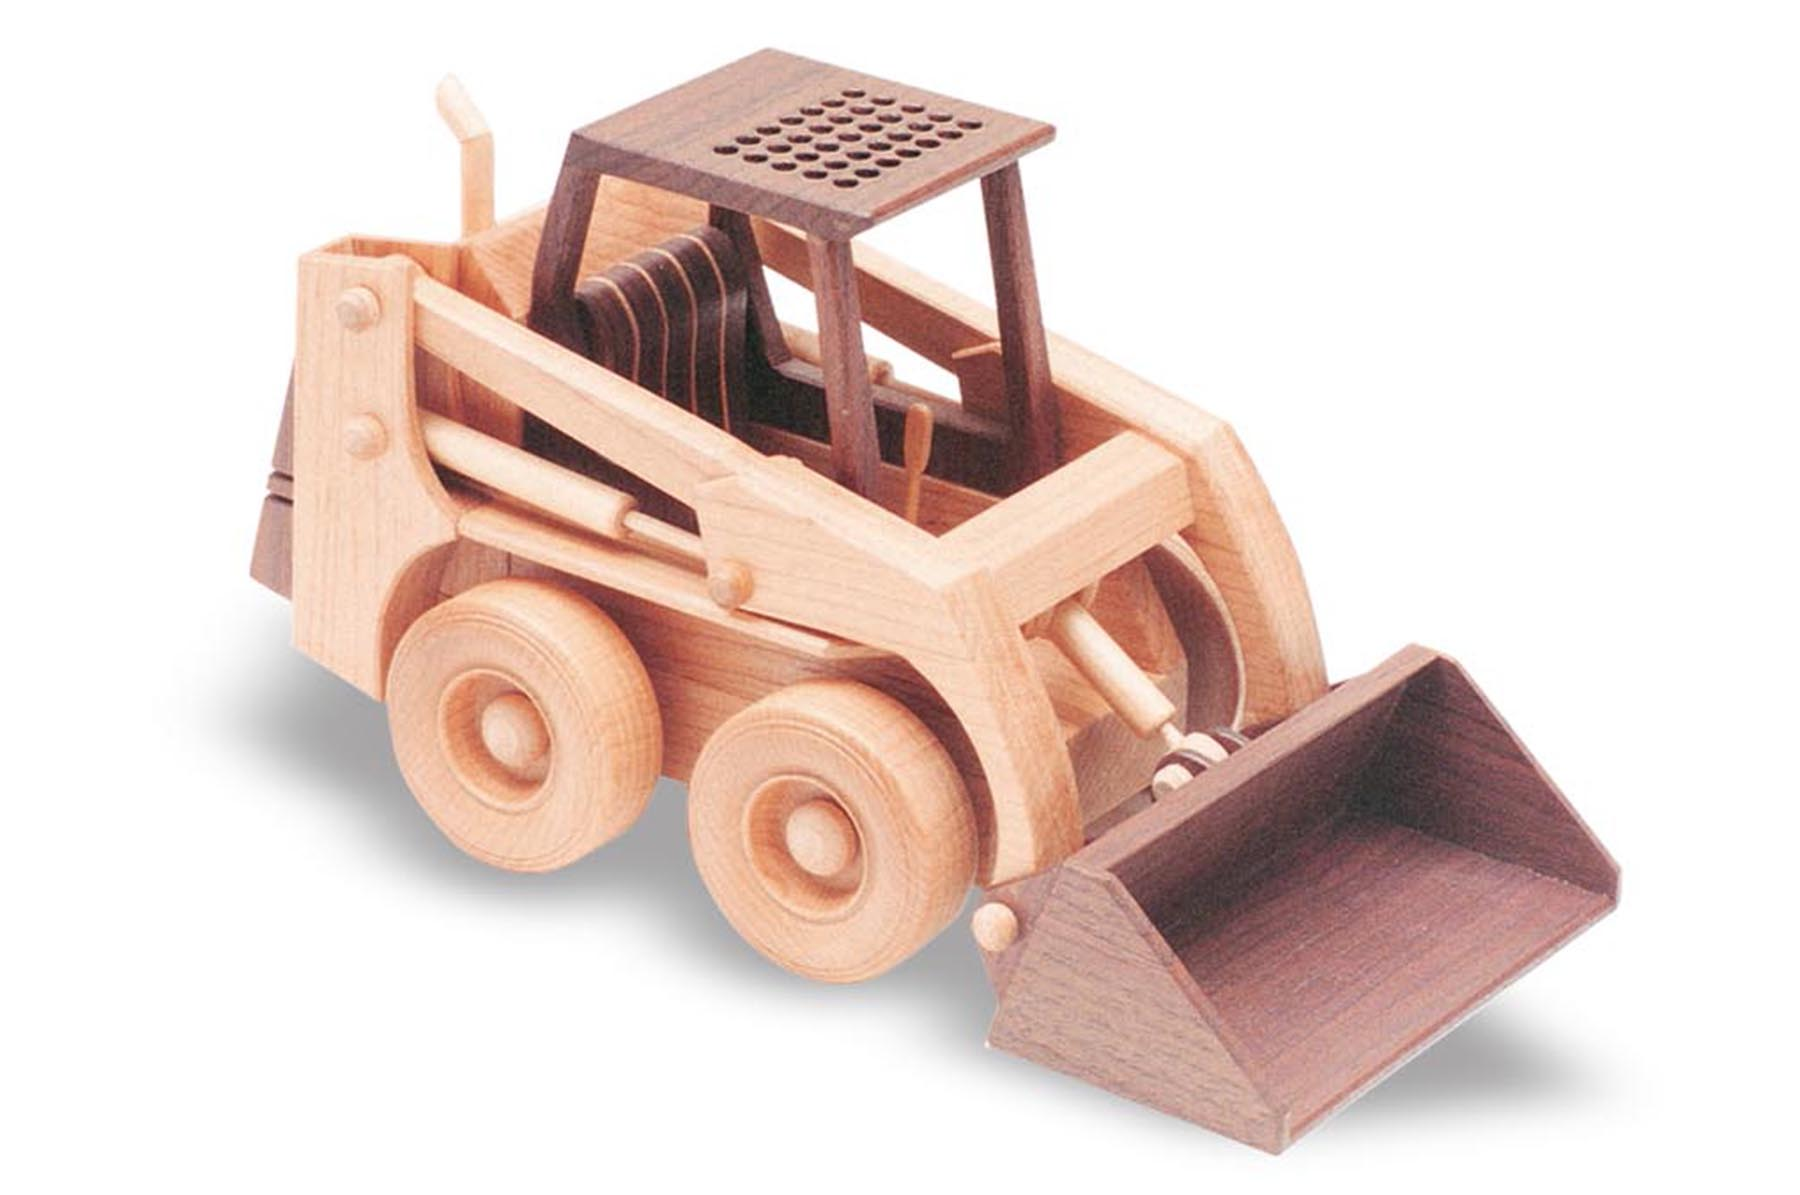 skid-steer loader 10inch (woodworking plan)